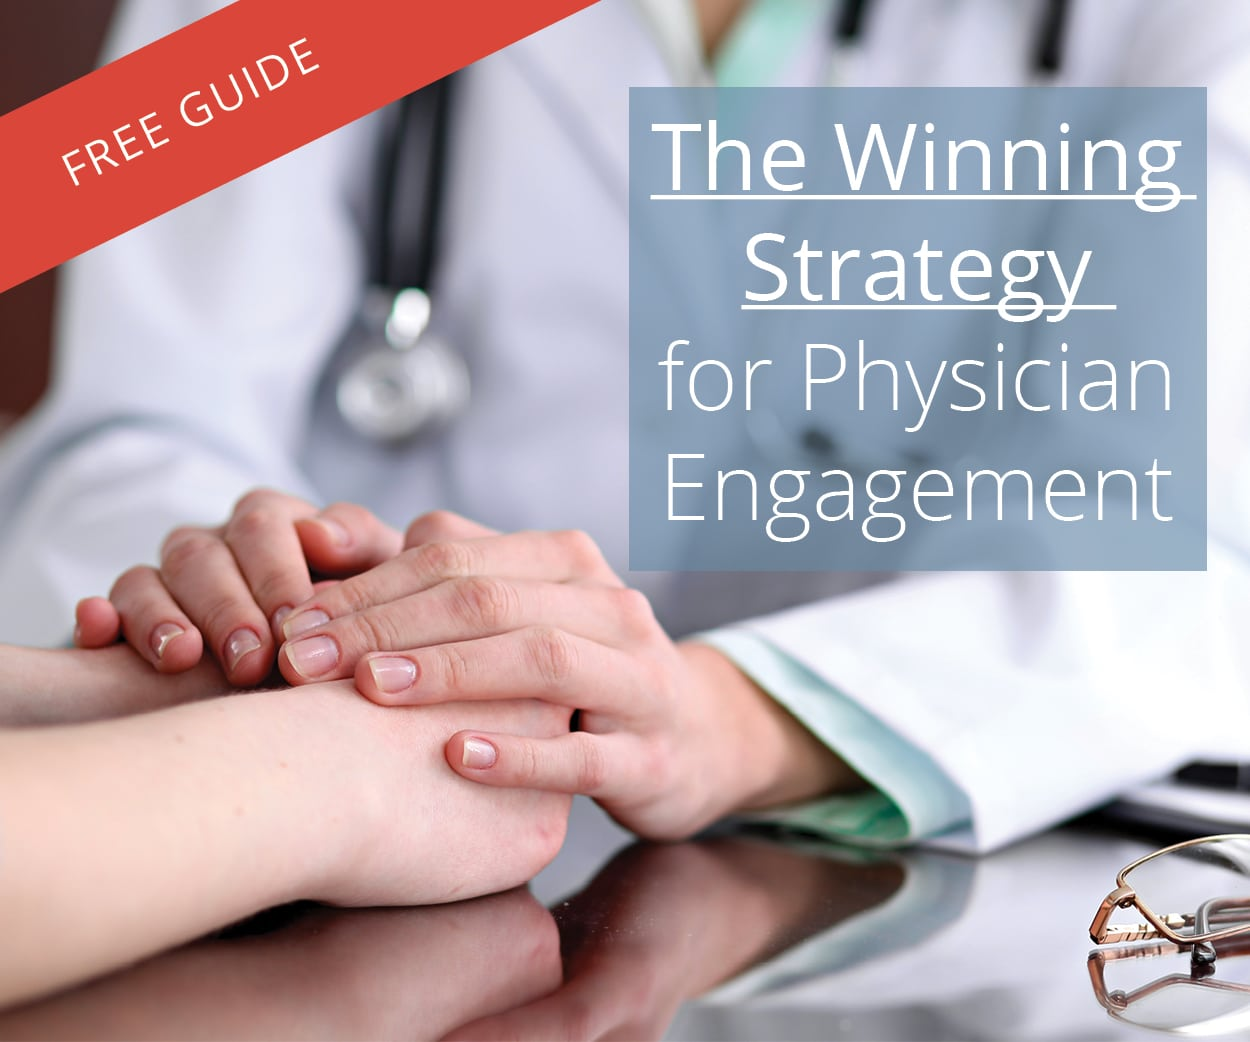 The Winning Strategy for Physician Engagement